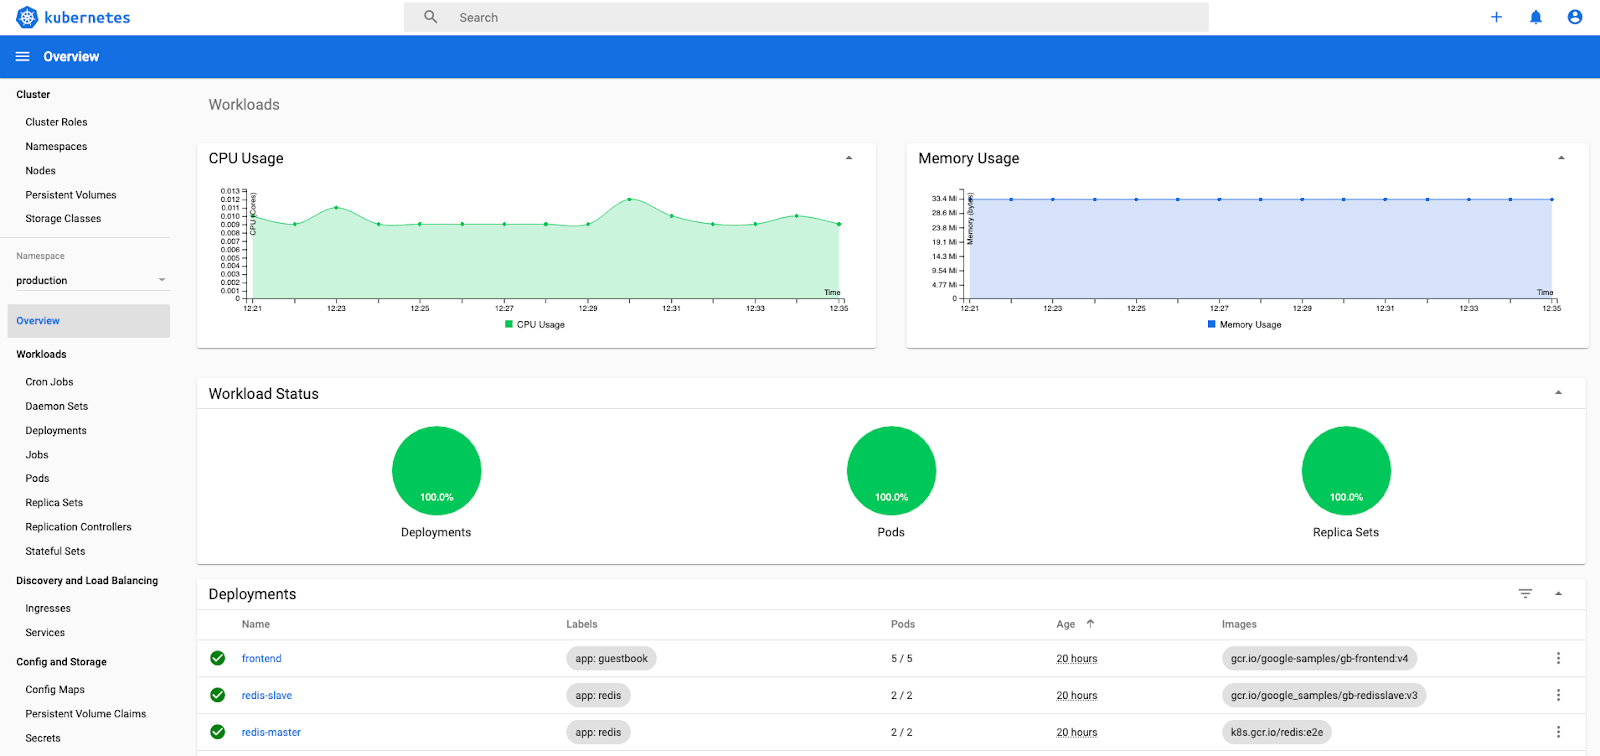 The Ultimate Guide to the Kubernetes Dashboard: How to